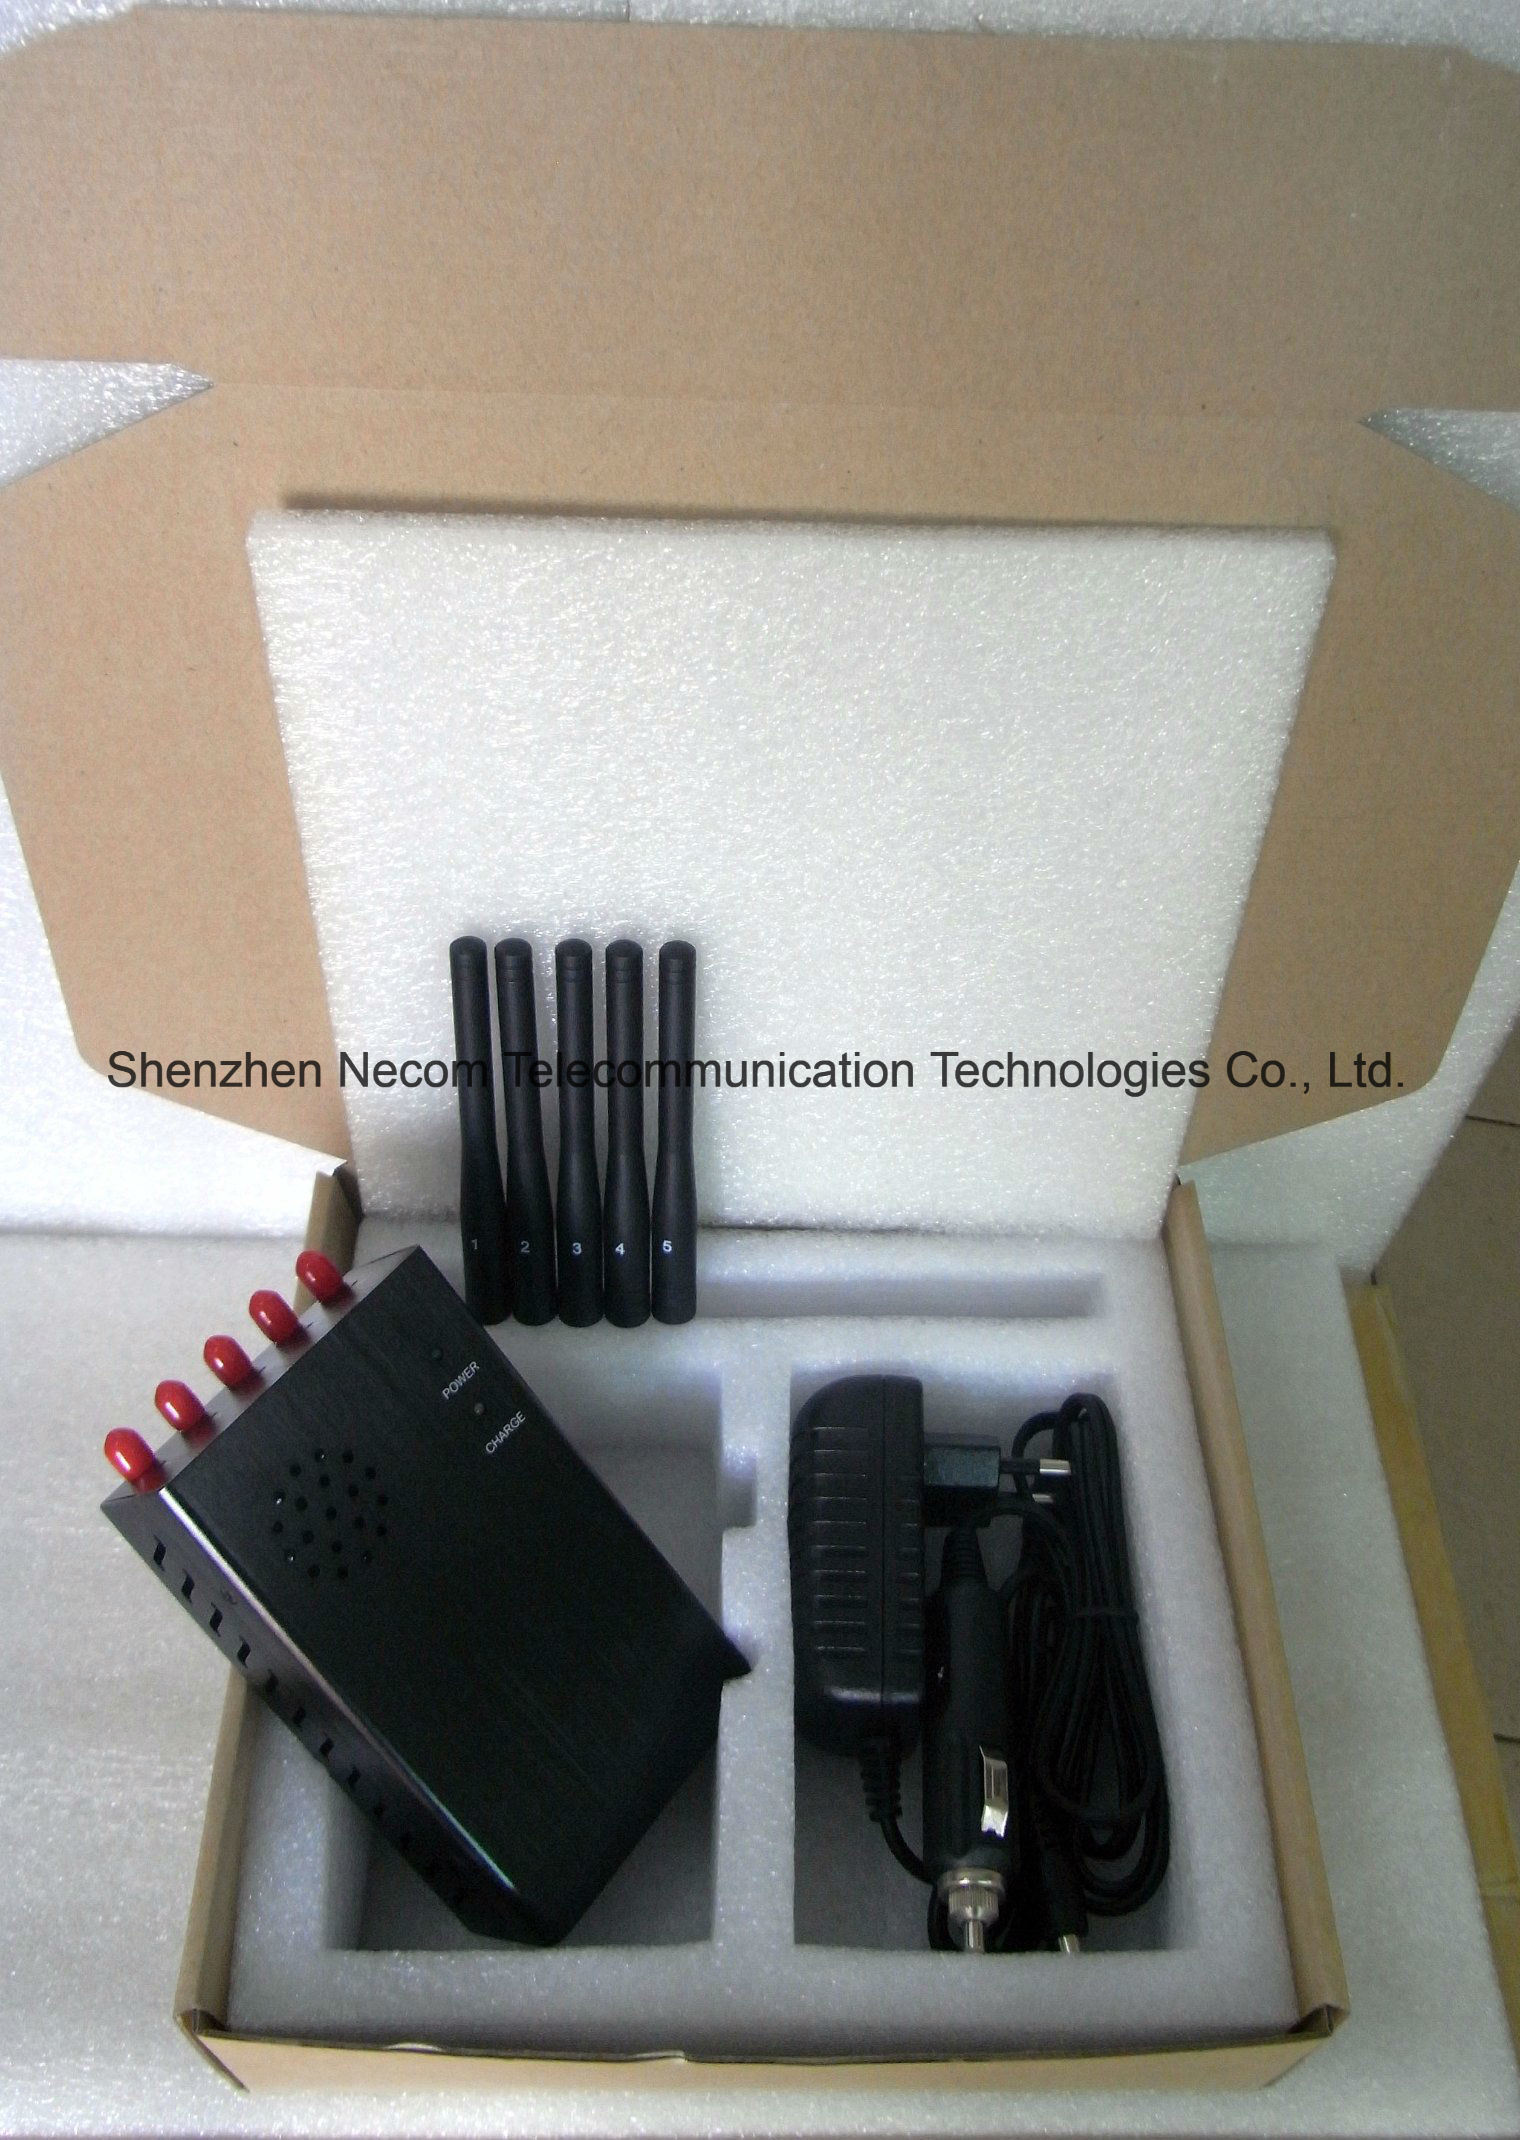 phone jammer australia firearms - China 2g+3G+Gpsl1+Lojack 5 Antennas Signal Blockers - China 2g+3G+Gpsl1+Lojack 5 Antennas Signal Blockers, 5 Band Signal Jammers